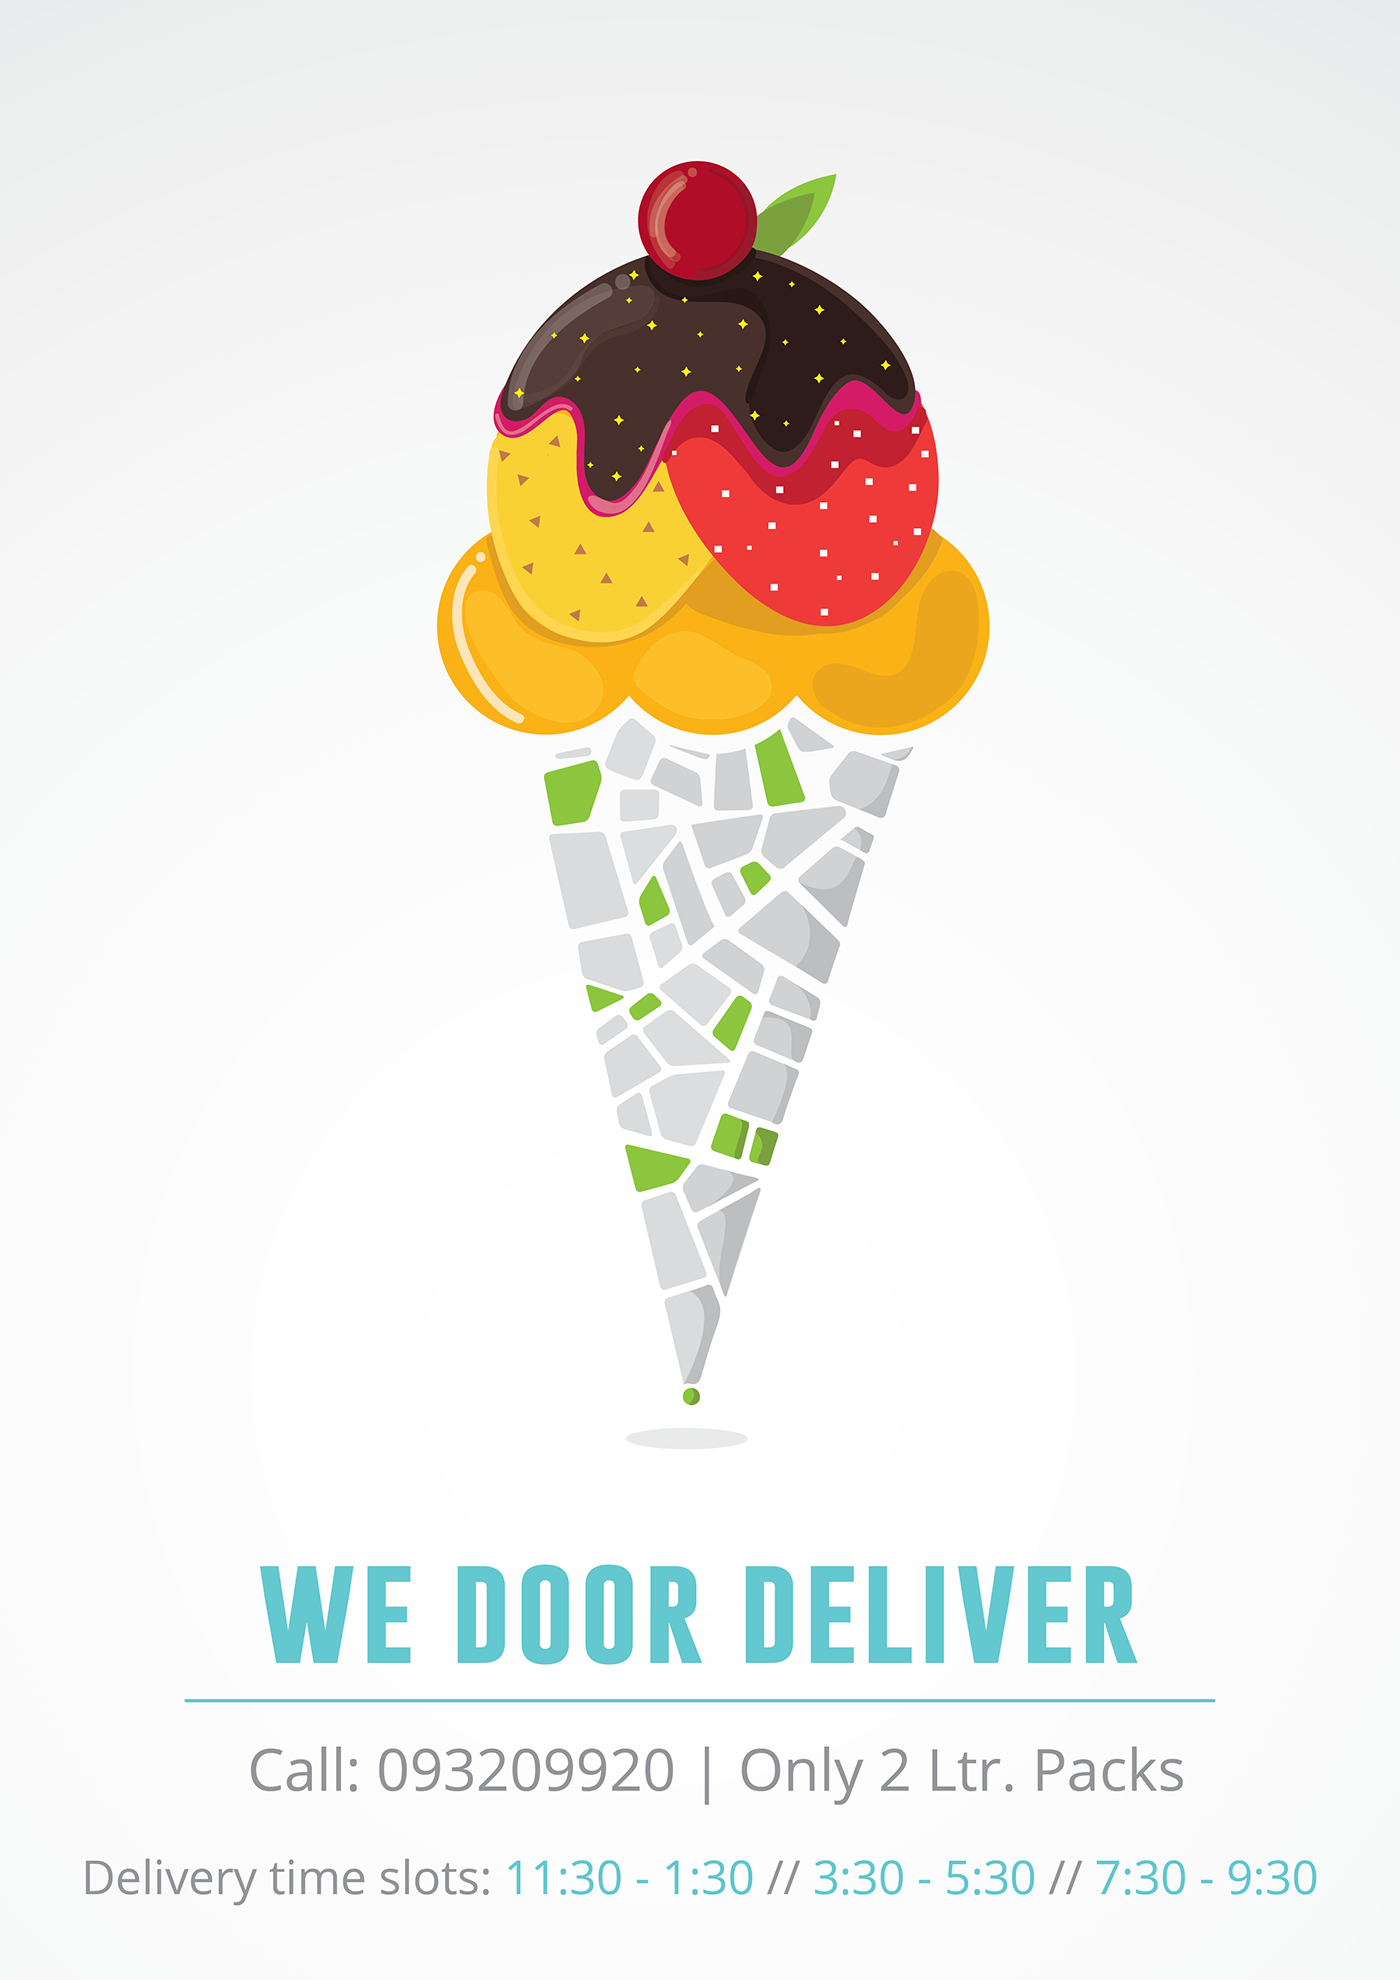 Ice Cream Delivery Posters on Behance